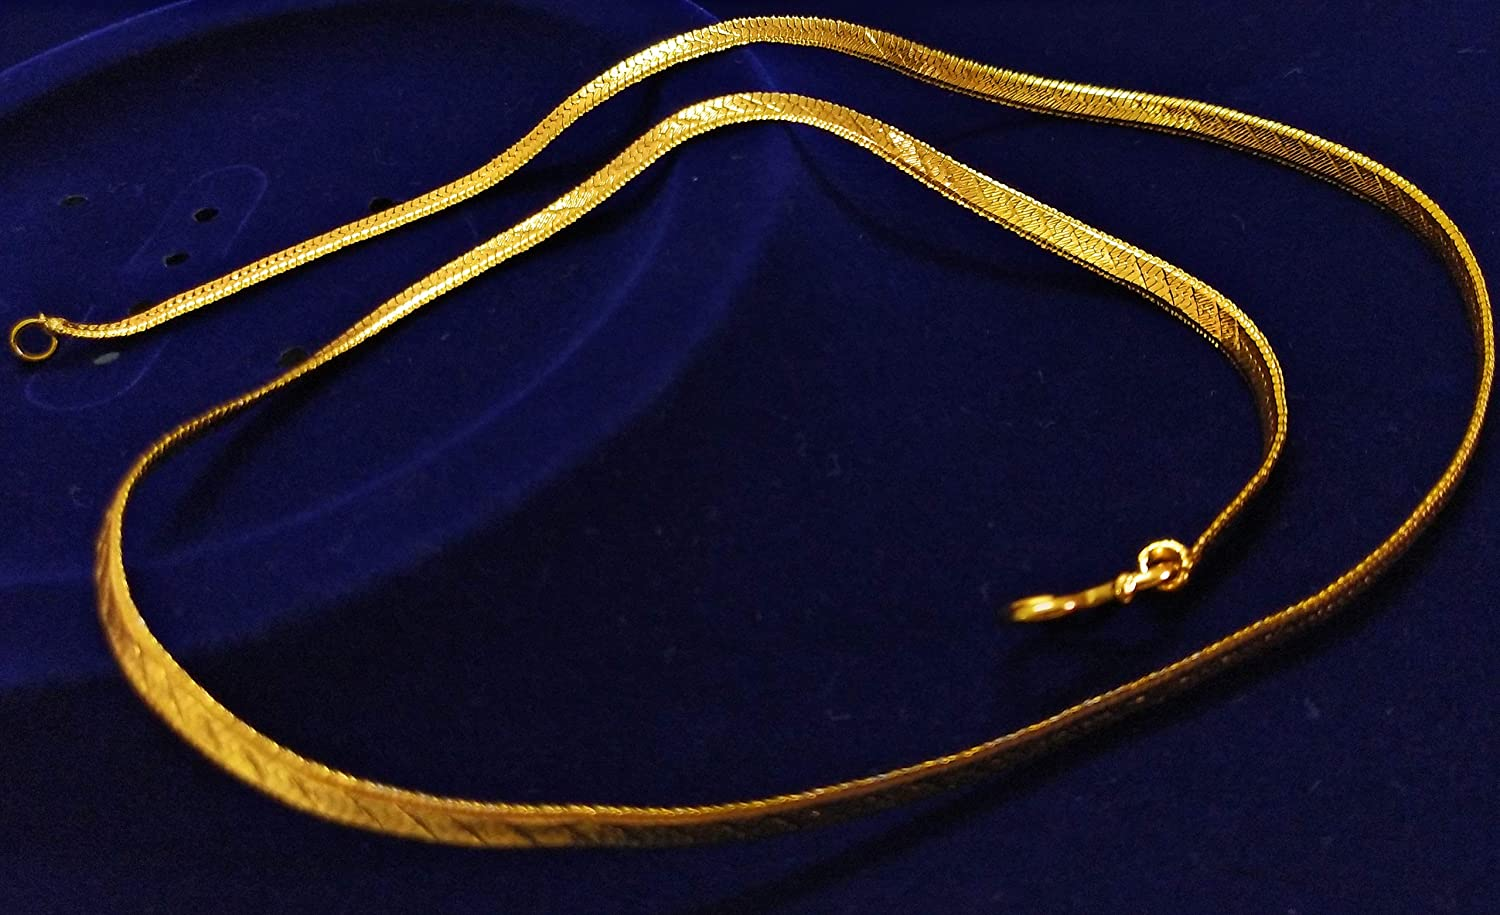 Parakeet House Antique Plain Chain with Gold Plating